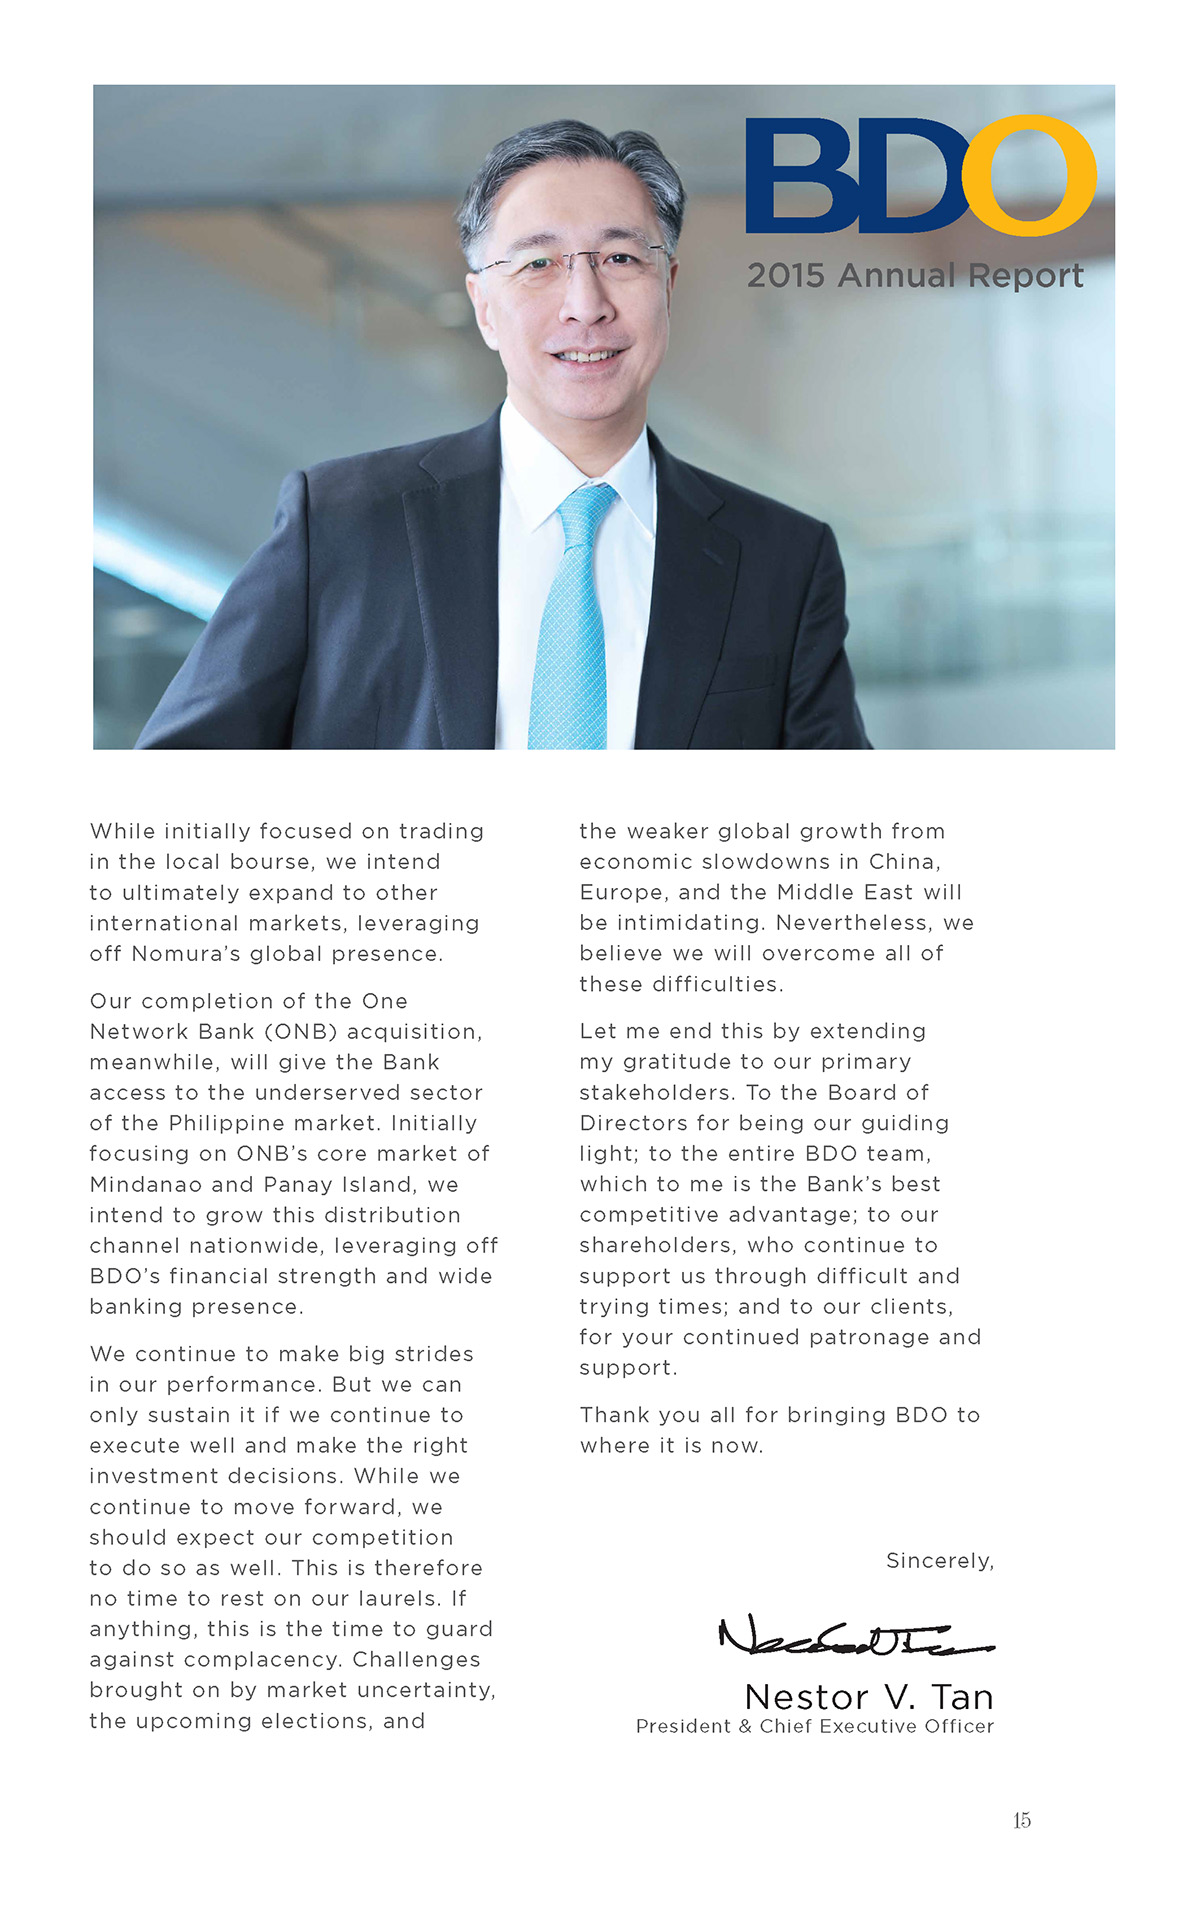 BDO 2015 Annual Report-Nestor Tan